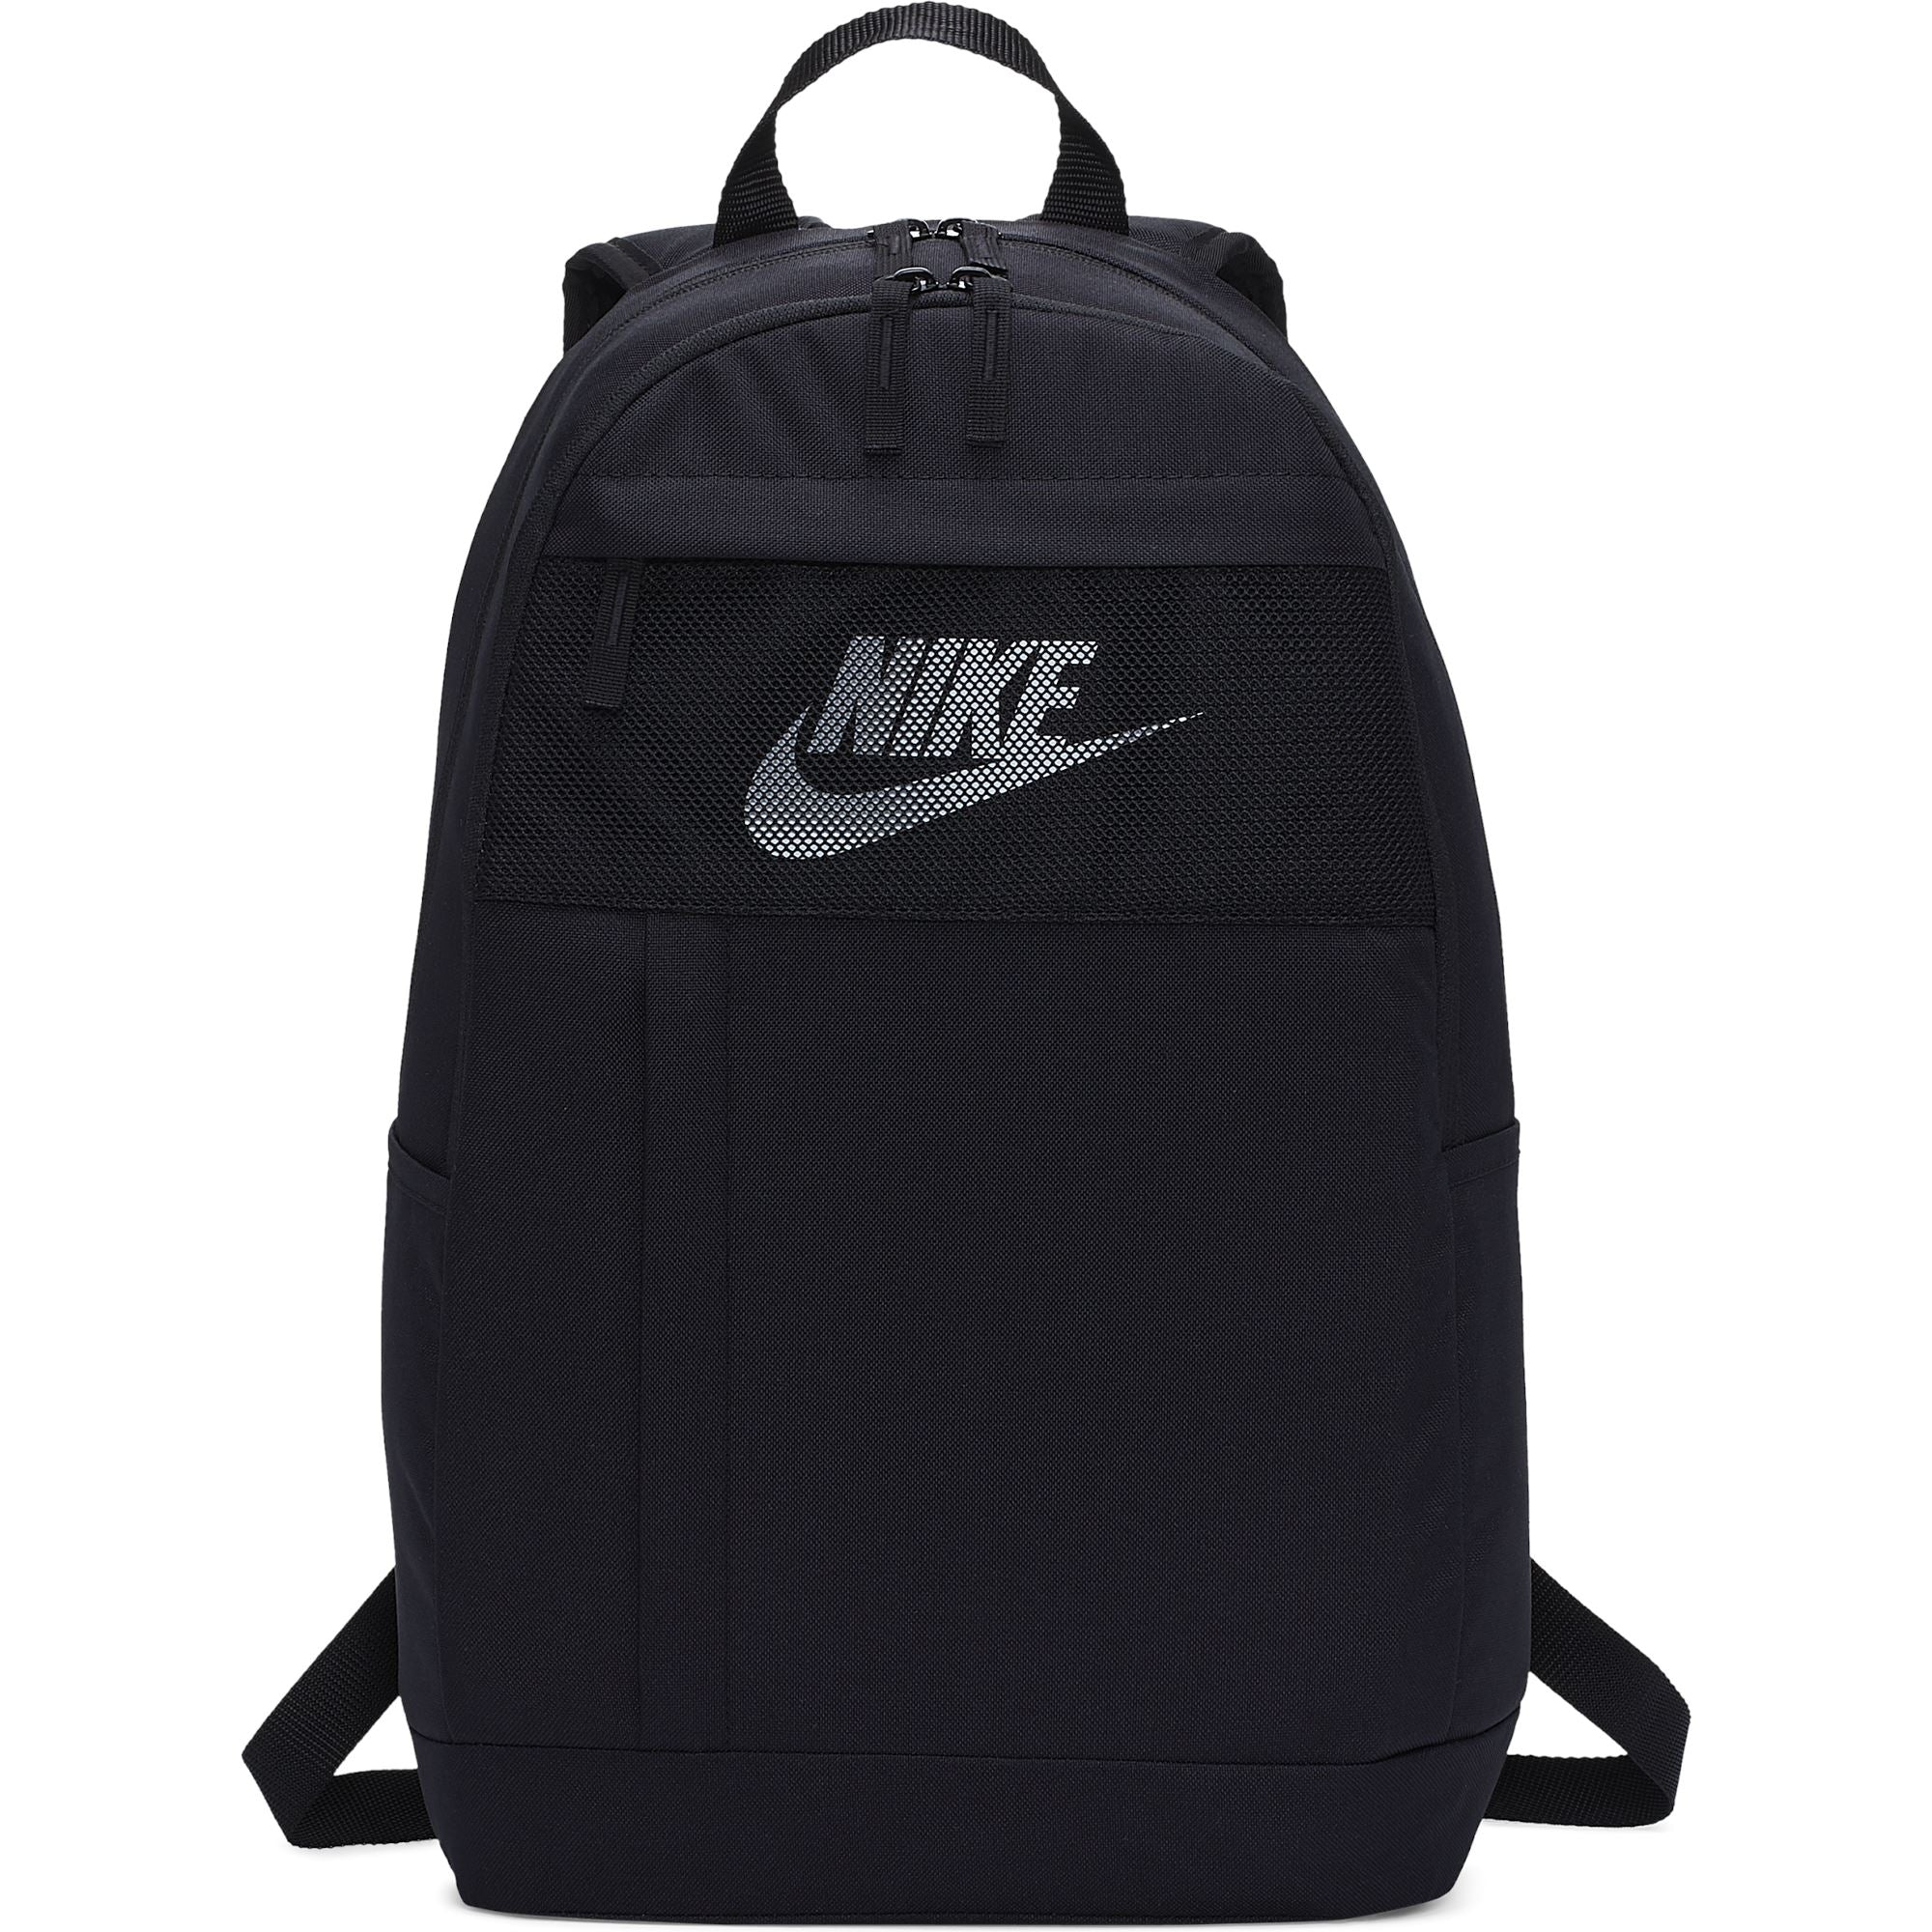 Nike Elemental LBR Backpack - Black/Black/White SP-Accessories-Bags Nike